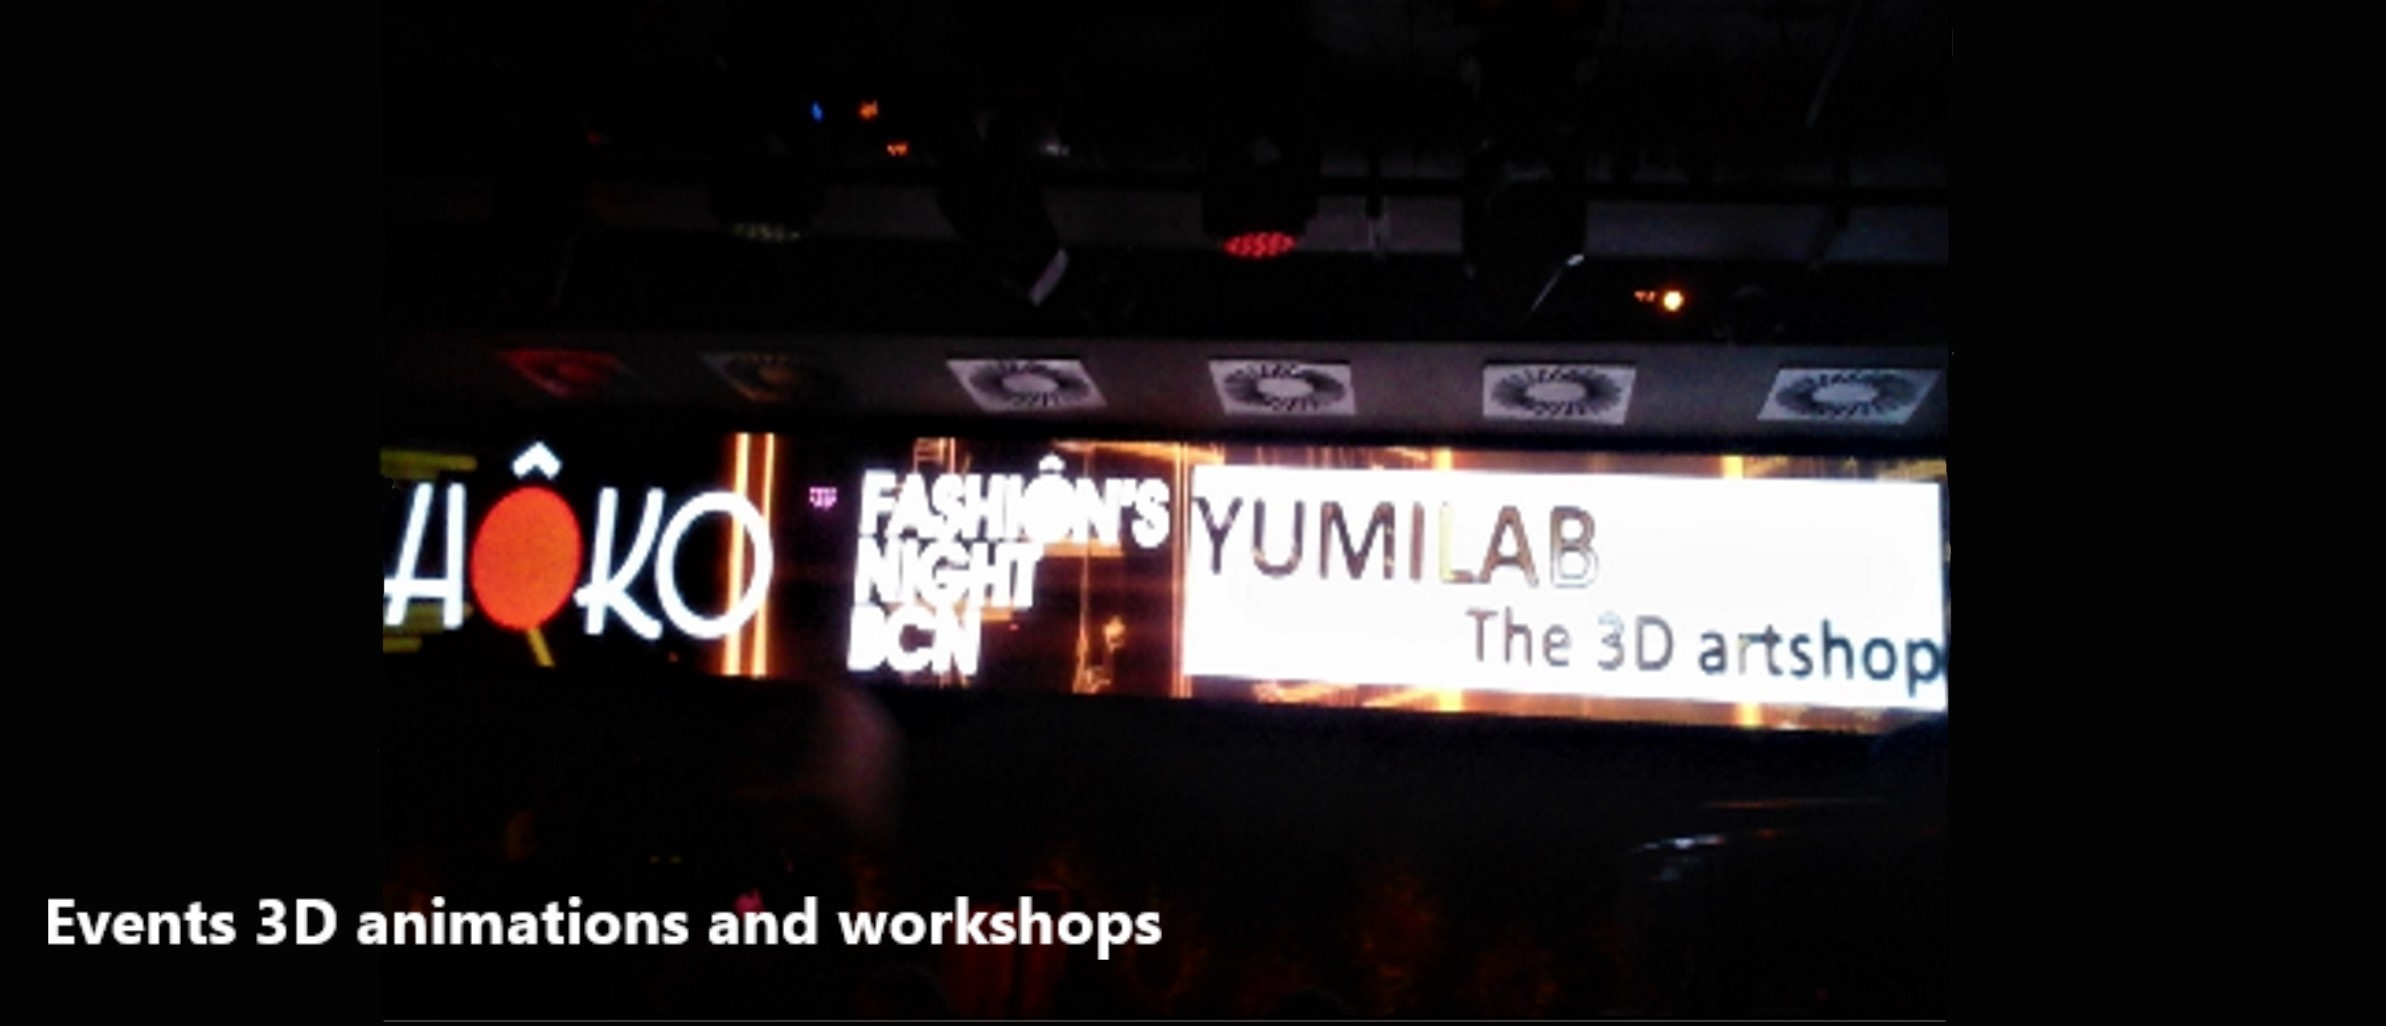 Yumilab: 3D services